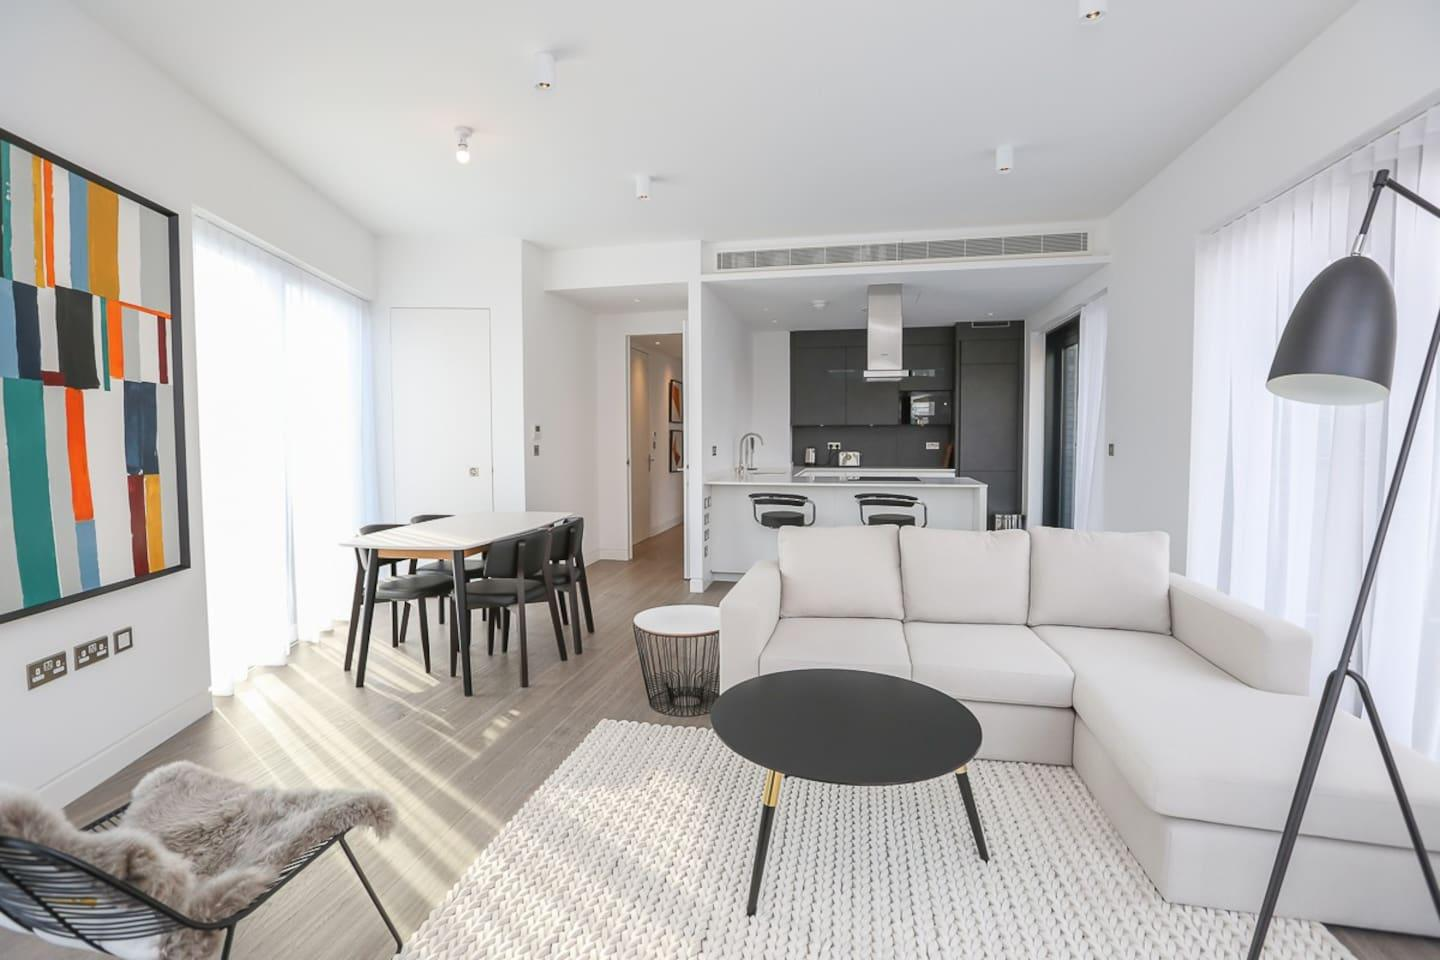 Luxury 2 Bedroom Apartment with Balcony in Shoreditch